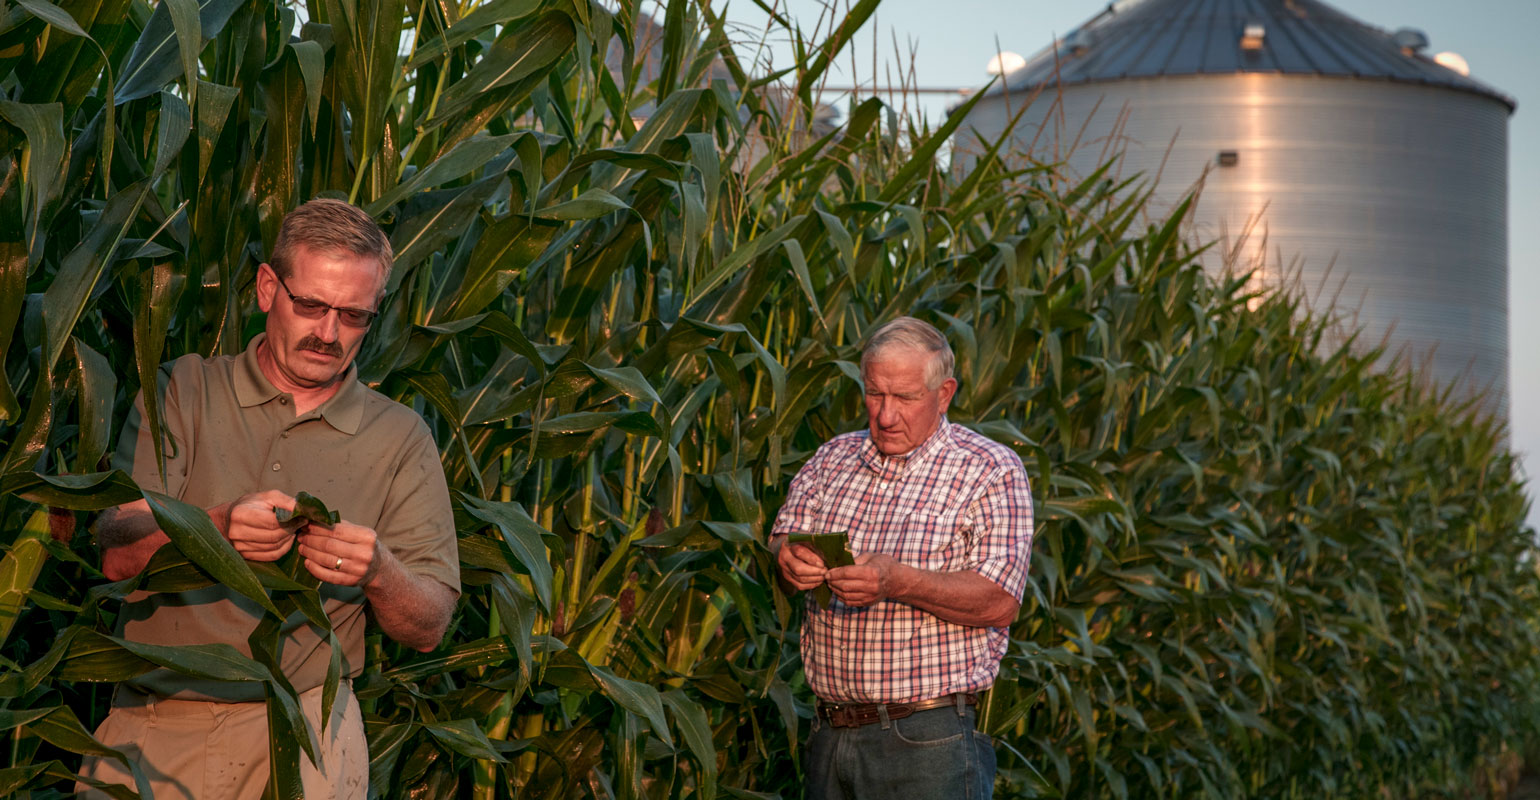 Two farmers examine the leaves of corn plants along a research plot at dusk